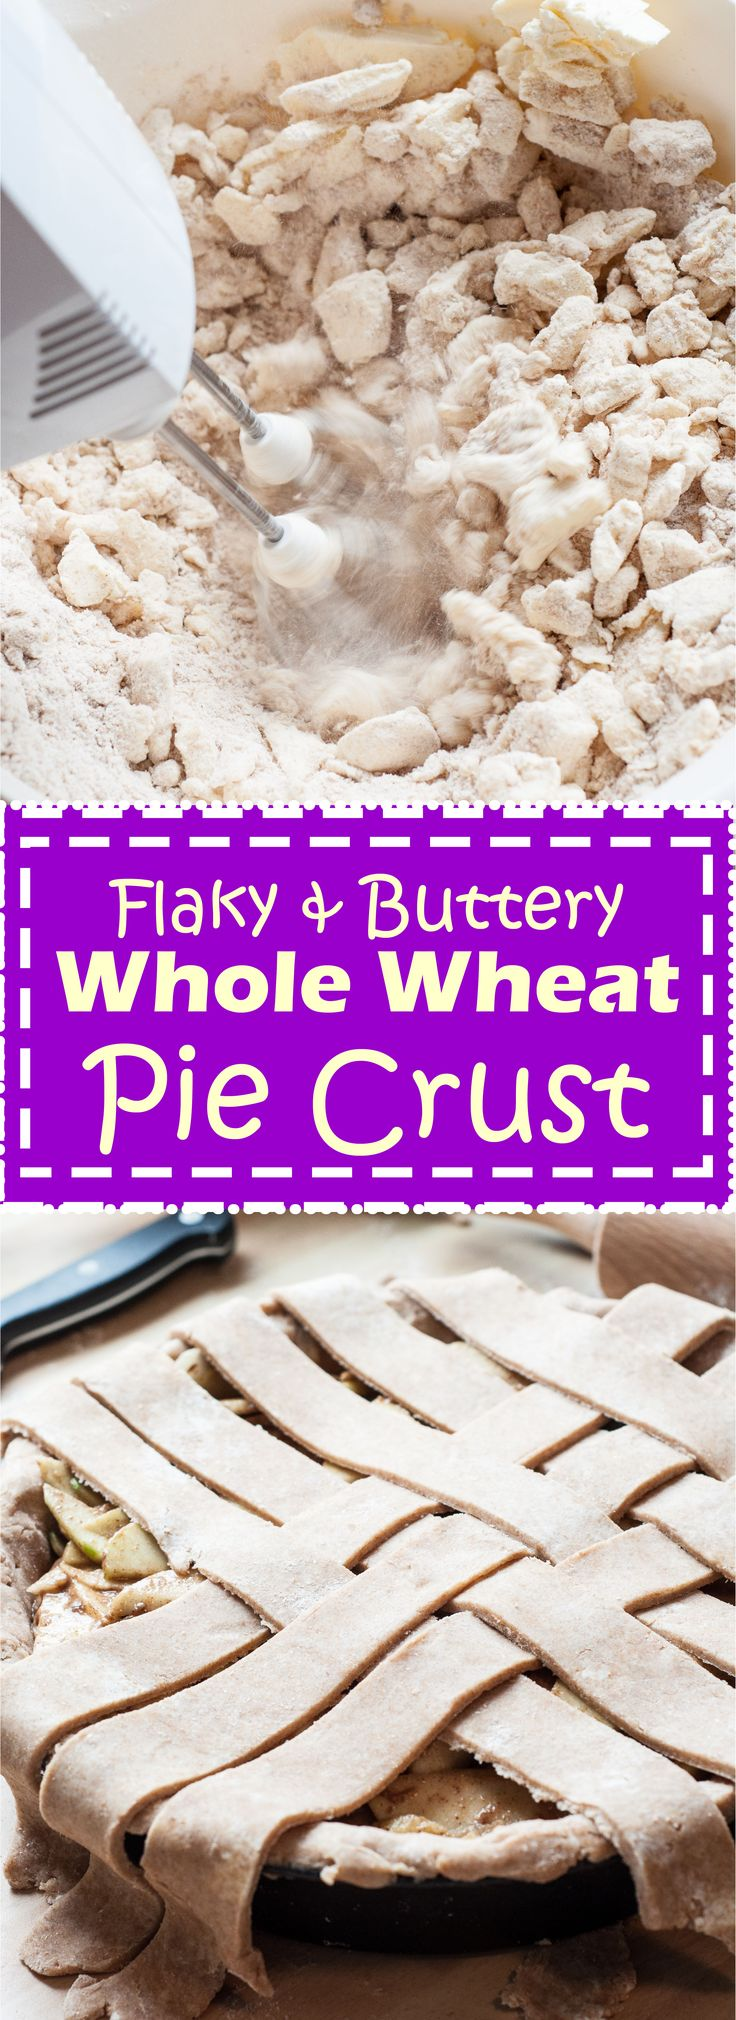 Healthier Whole Wheat Pie Crust Recipe that you can use for any of your holiday pie recipes or other dessert recipes. This flaky crust is vegan and dairy-free. | VeganFamilyRecipes.com |#dough #thanksgiving #christmas